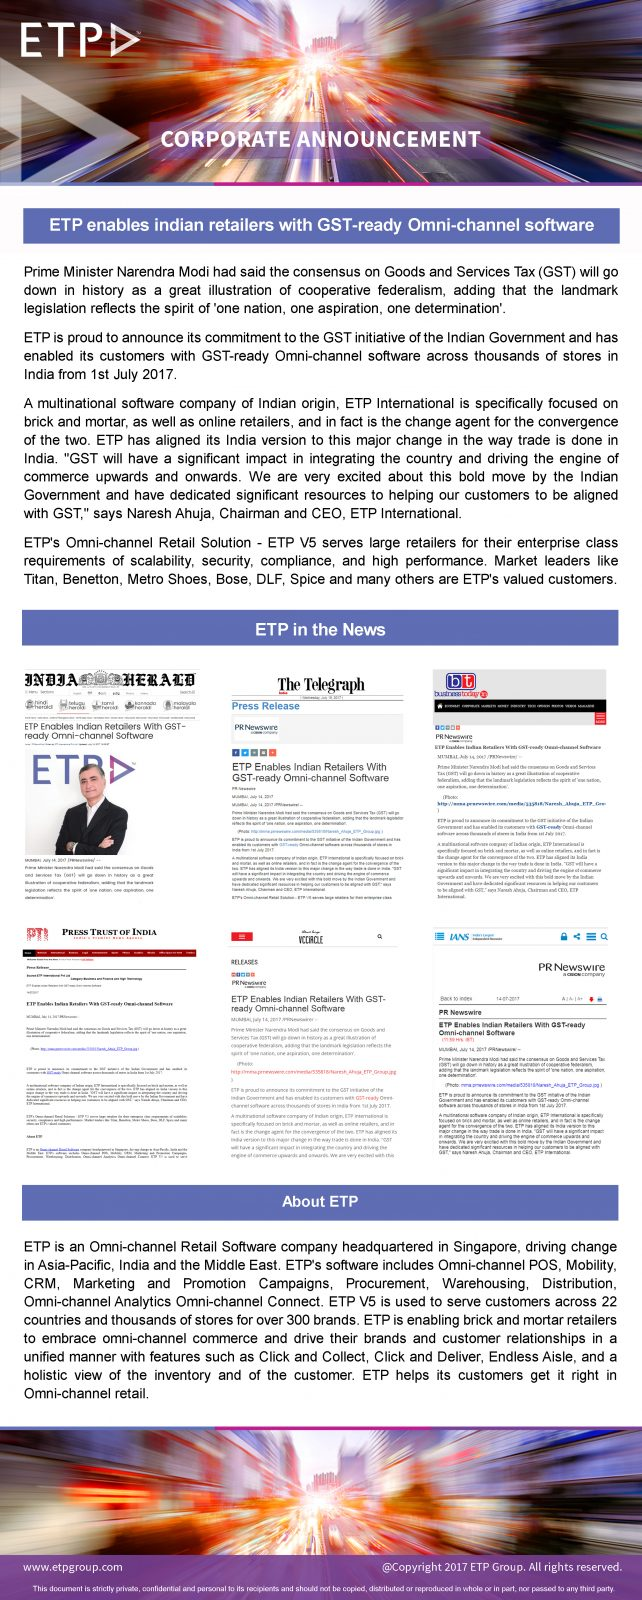 etp-in-the-news